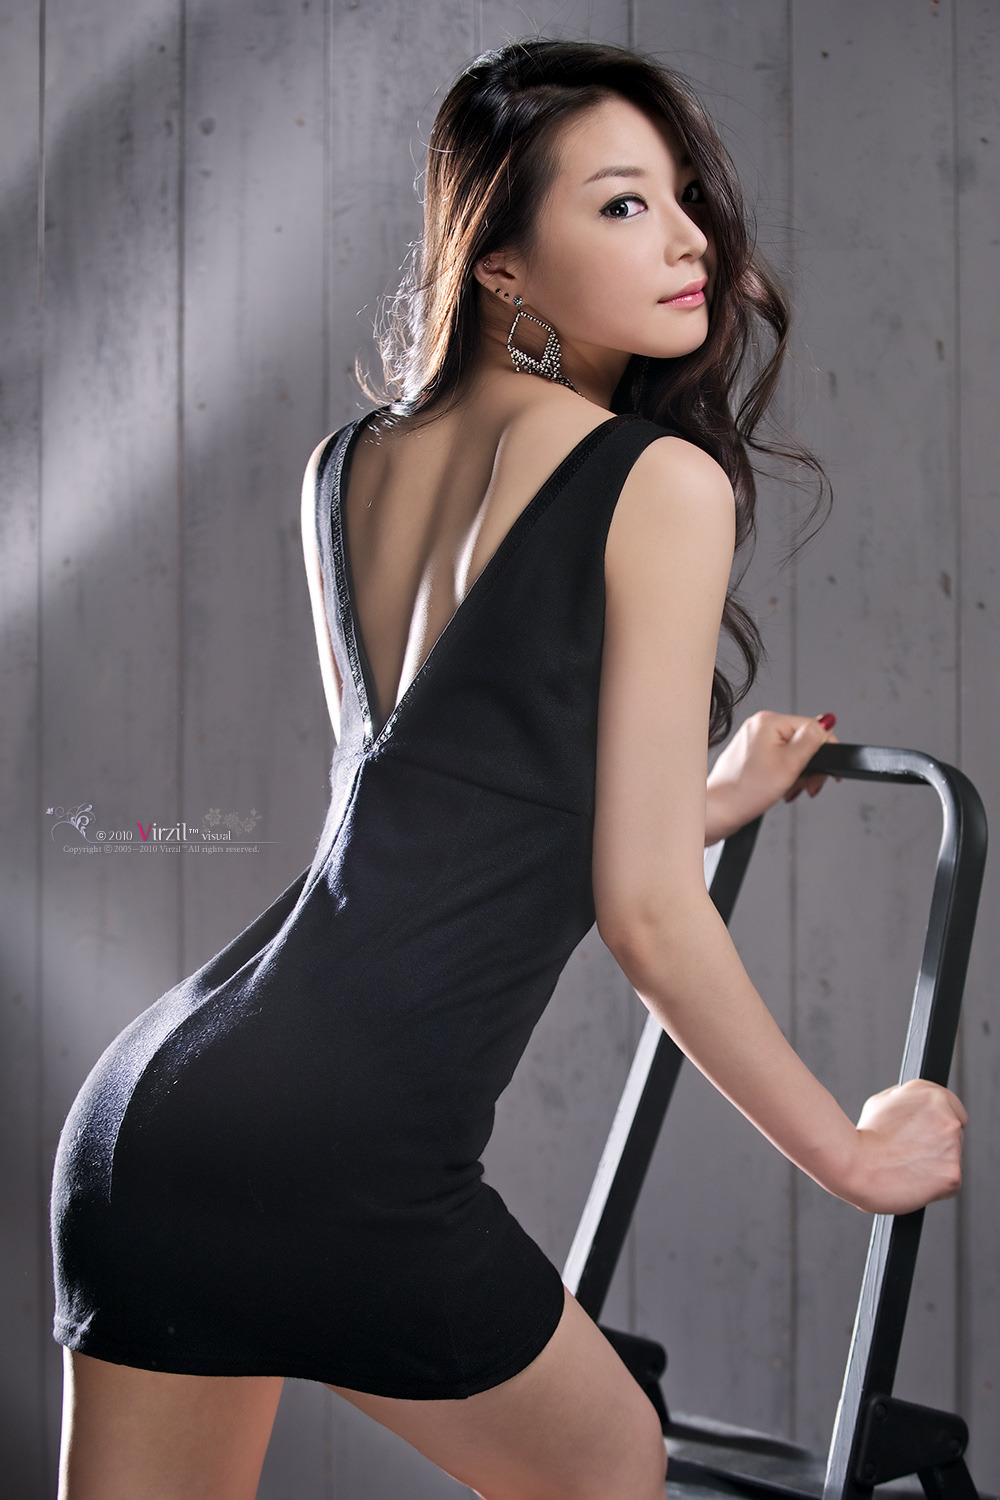 Sexy+Lee+Eun+Seo%21 006 Model Lee Eun Seo Photo Gallery